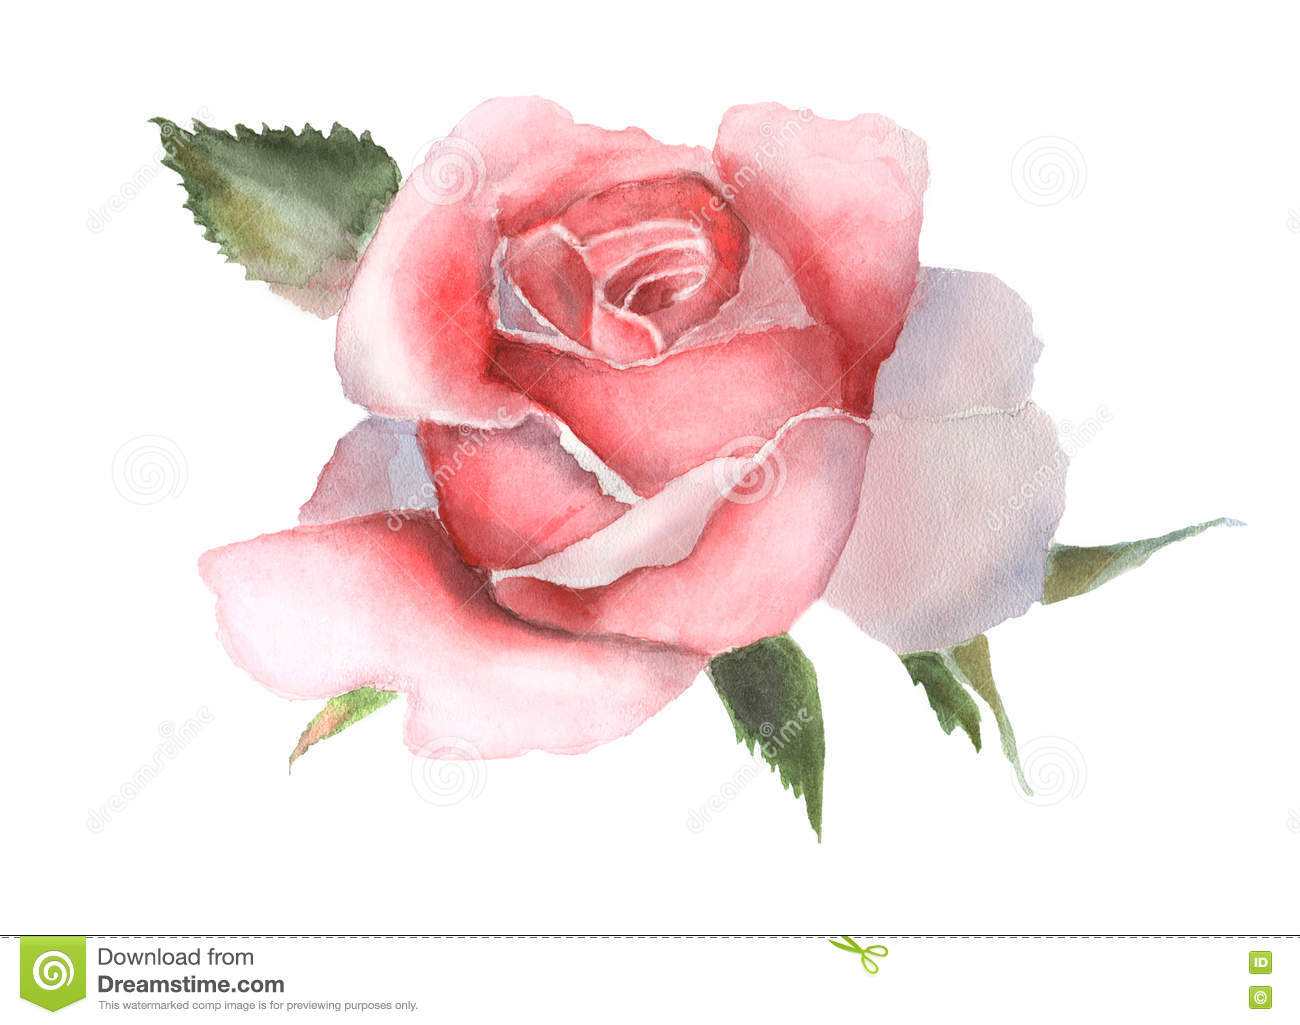 Watercolor Pink Rose On White Handmade Drawing Stock Illustration